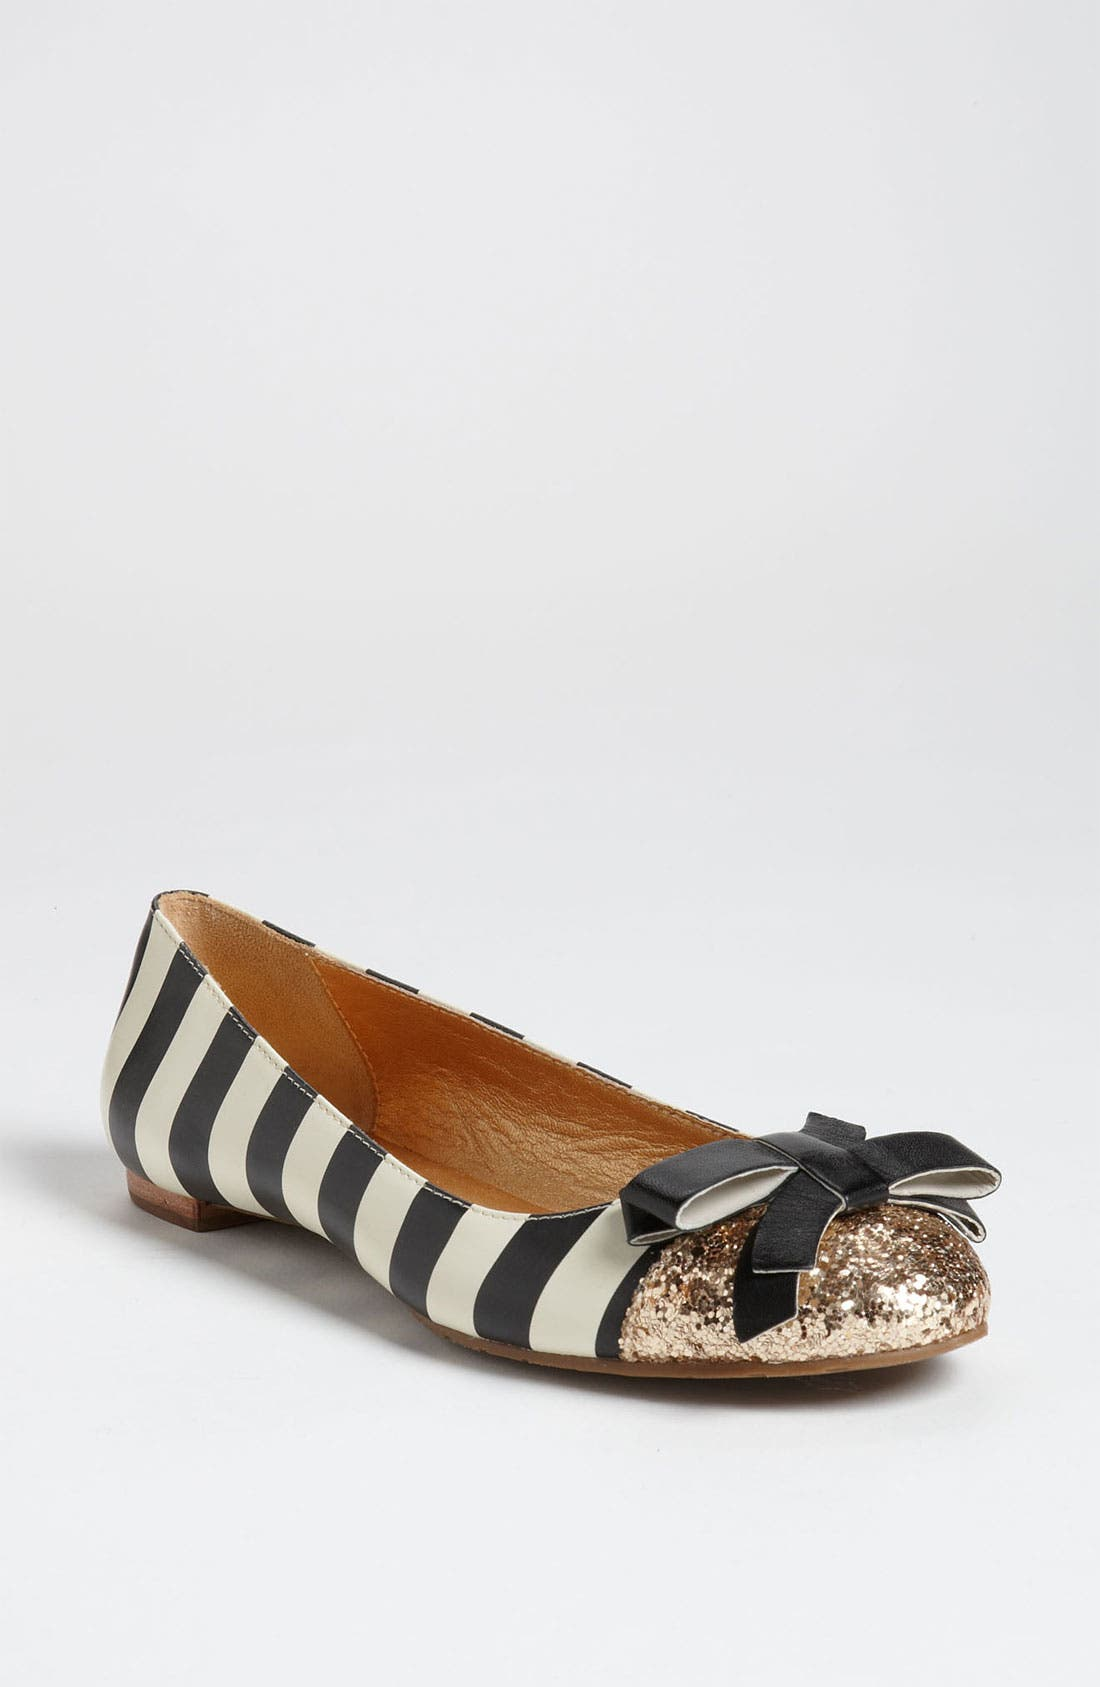 Main Image - kate spade new york 'trixie' flat